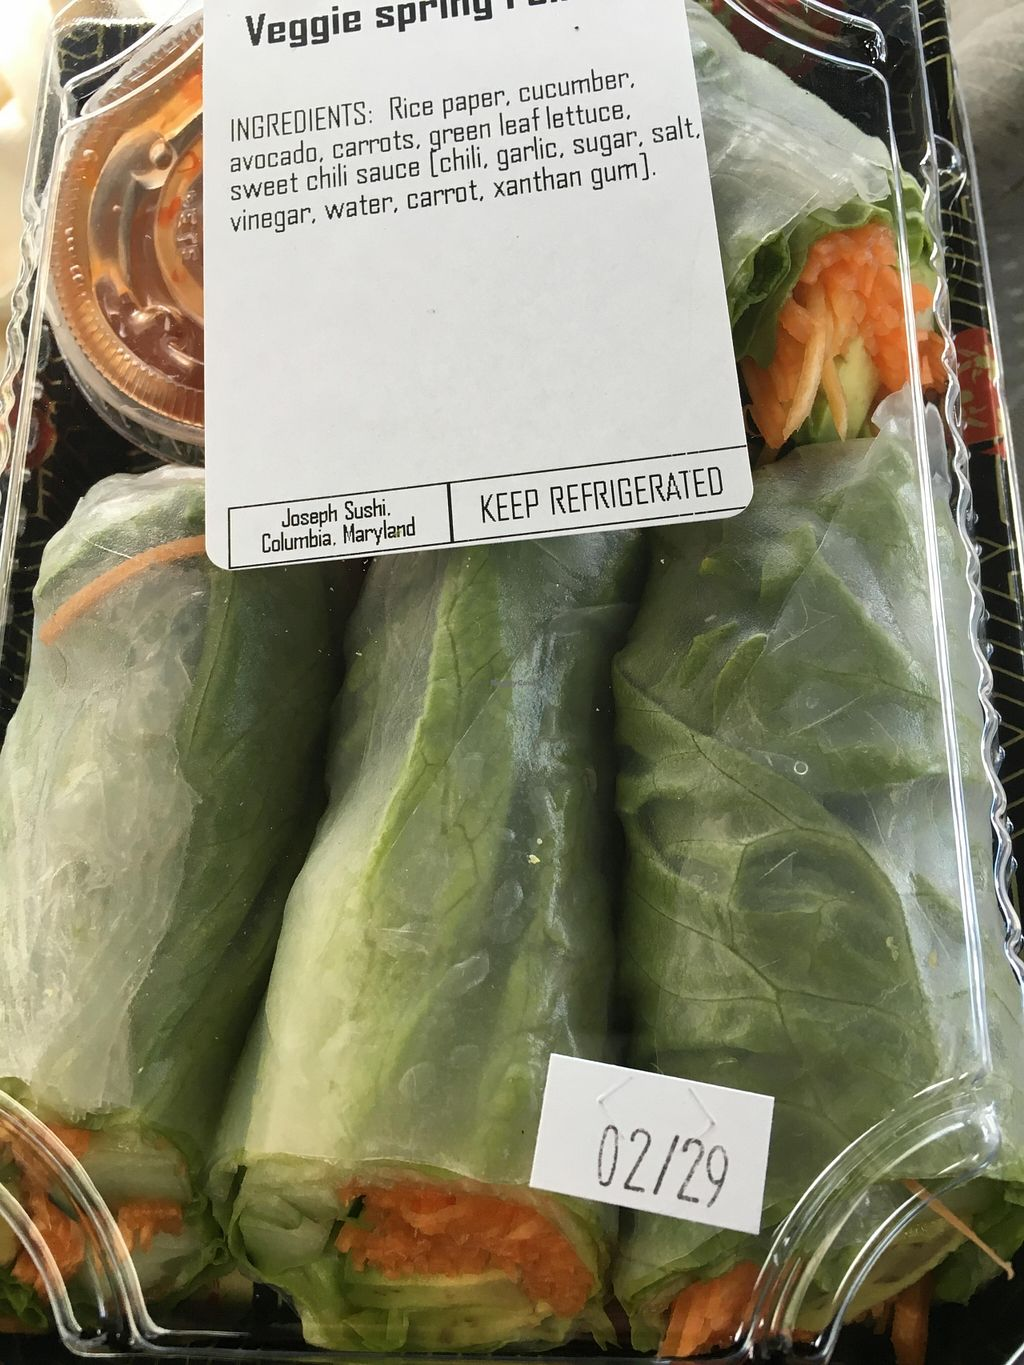 """Photo of Roots Market  by <a href=""""/members/profile/cookiem"""">cookiem</a> <br/>Spring rolls!! <br/> February 28, 2016  - <a href='/contact/abuse/image/3990/138134'>Report</a>"""